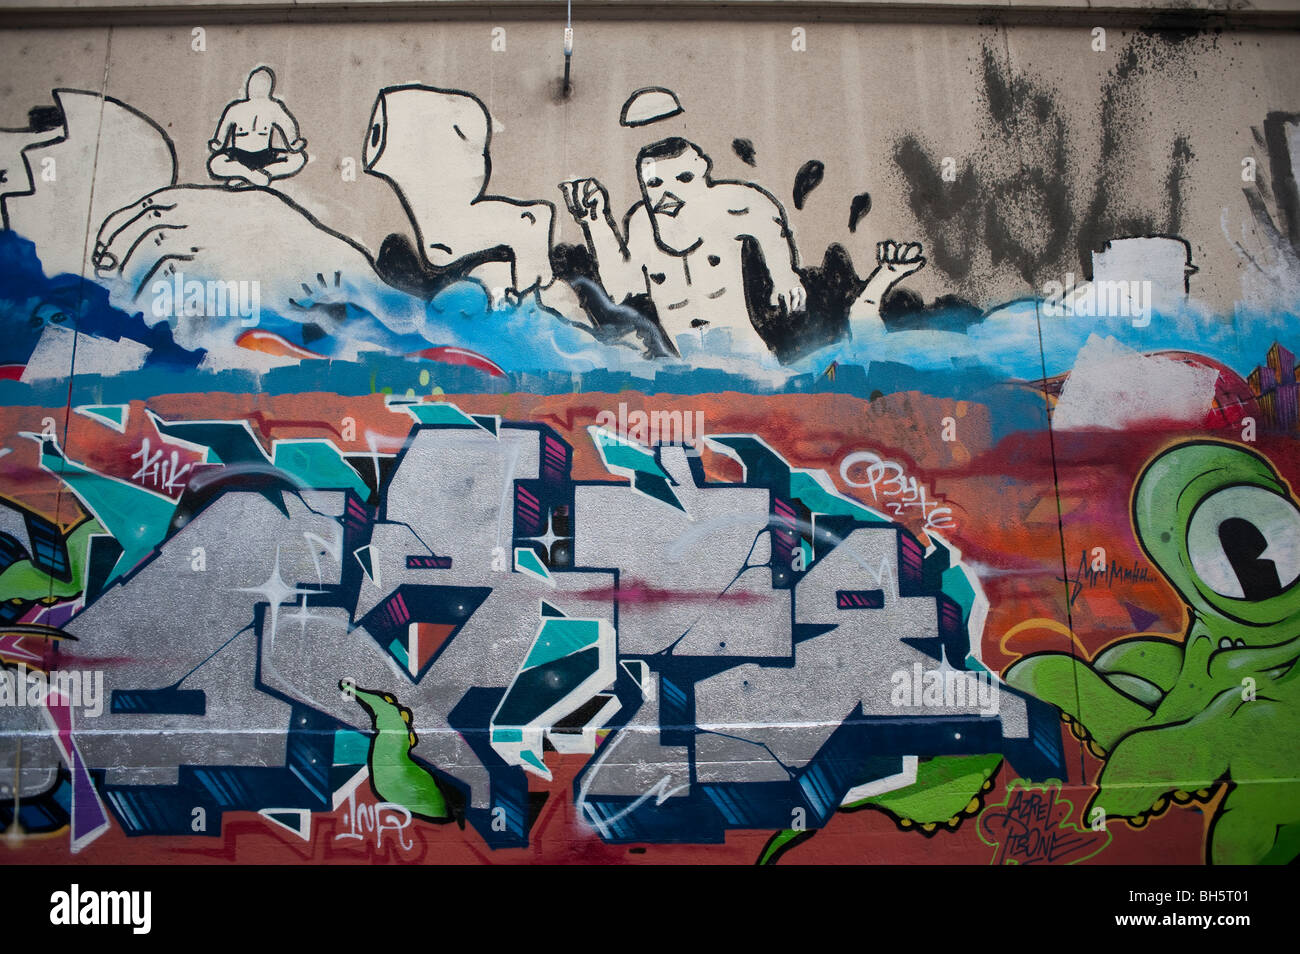 paris street art stockfotos paris street art bilder alamy. Black Bedroom Furniture Sets. Home Design Ideas